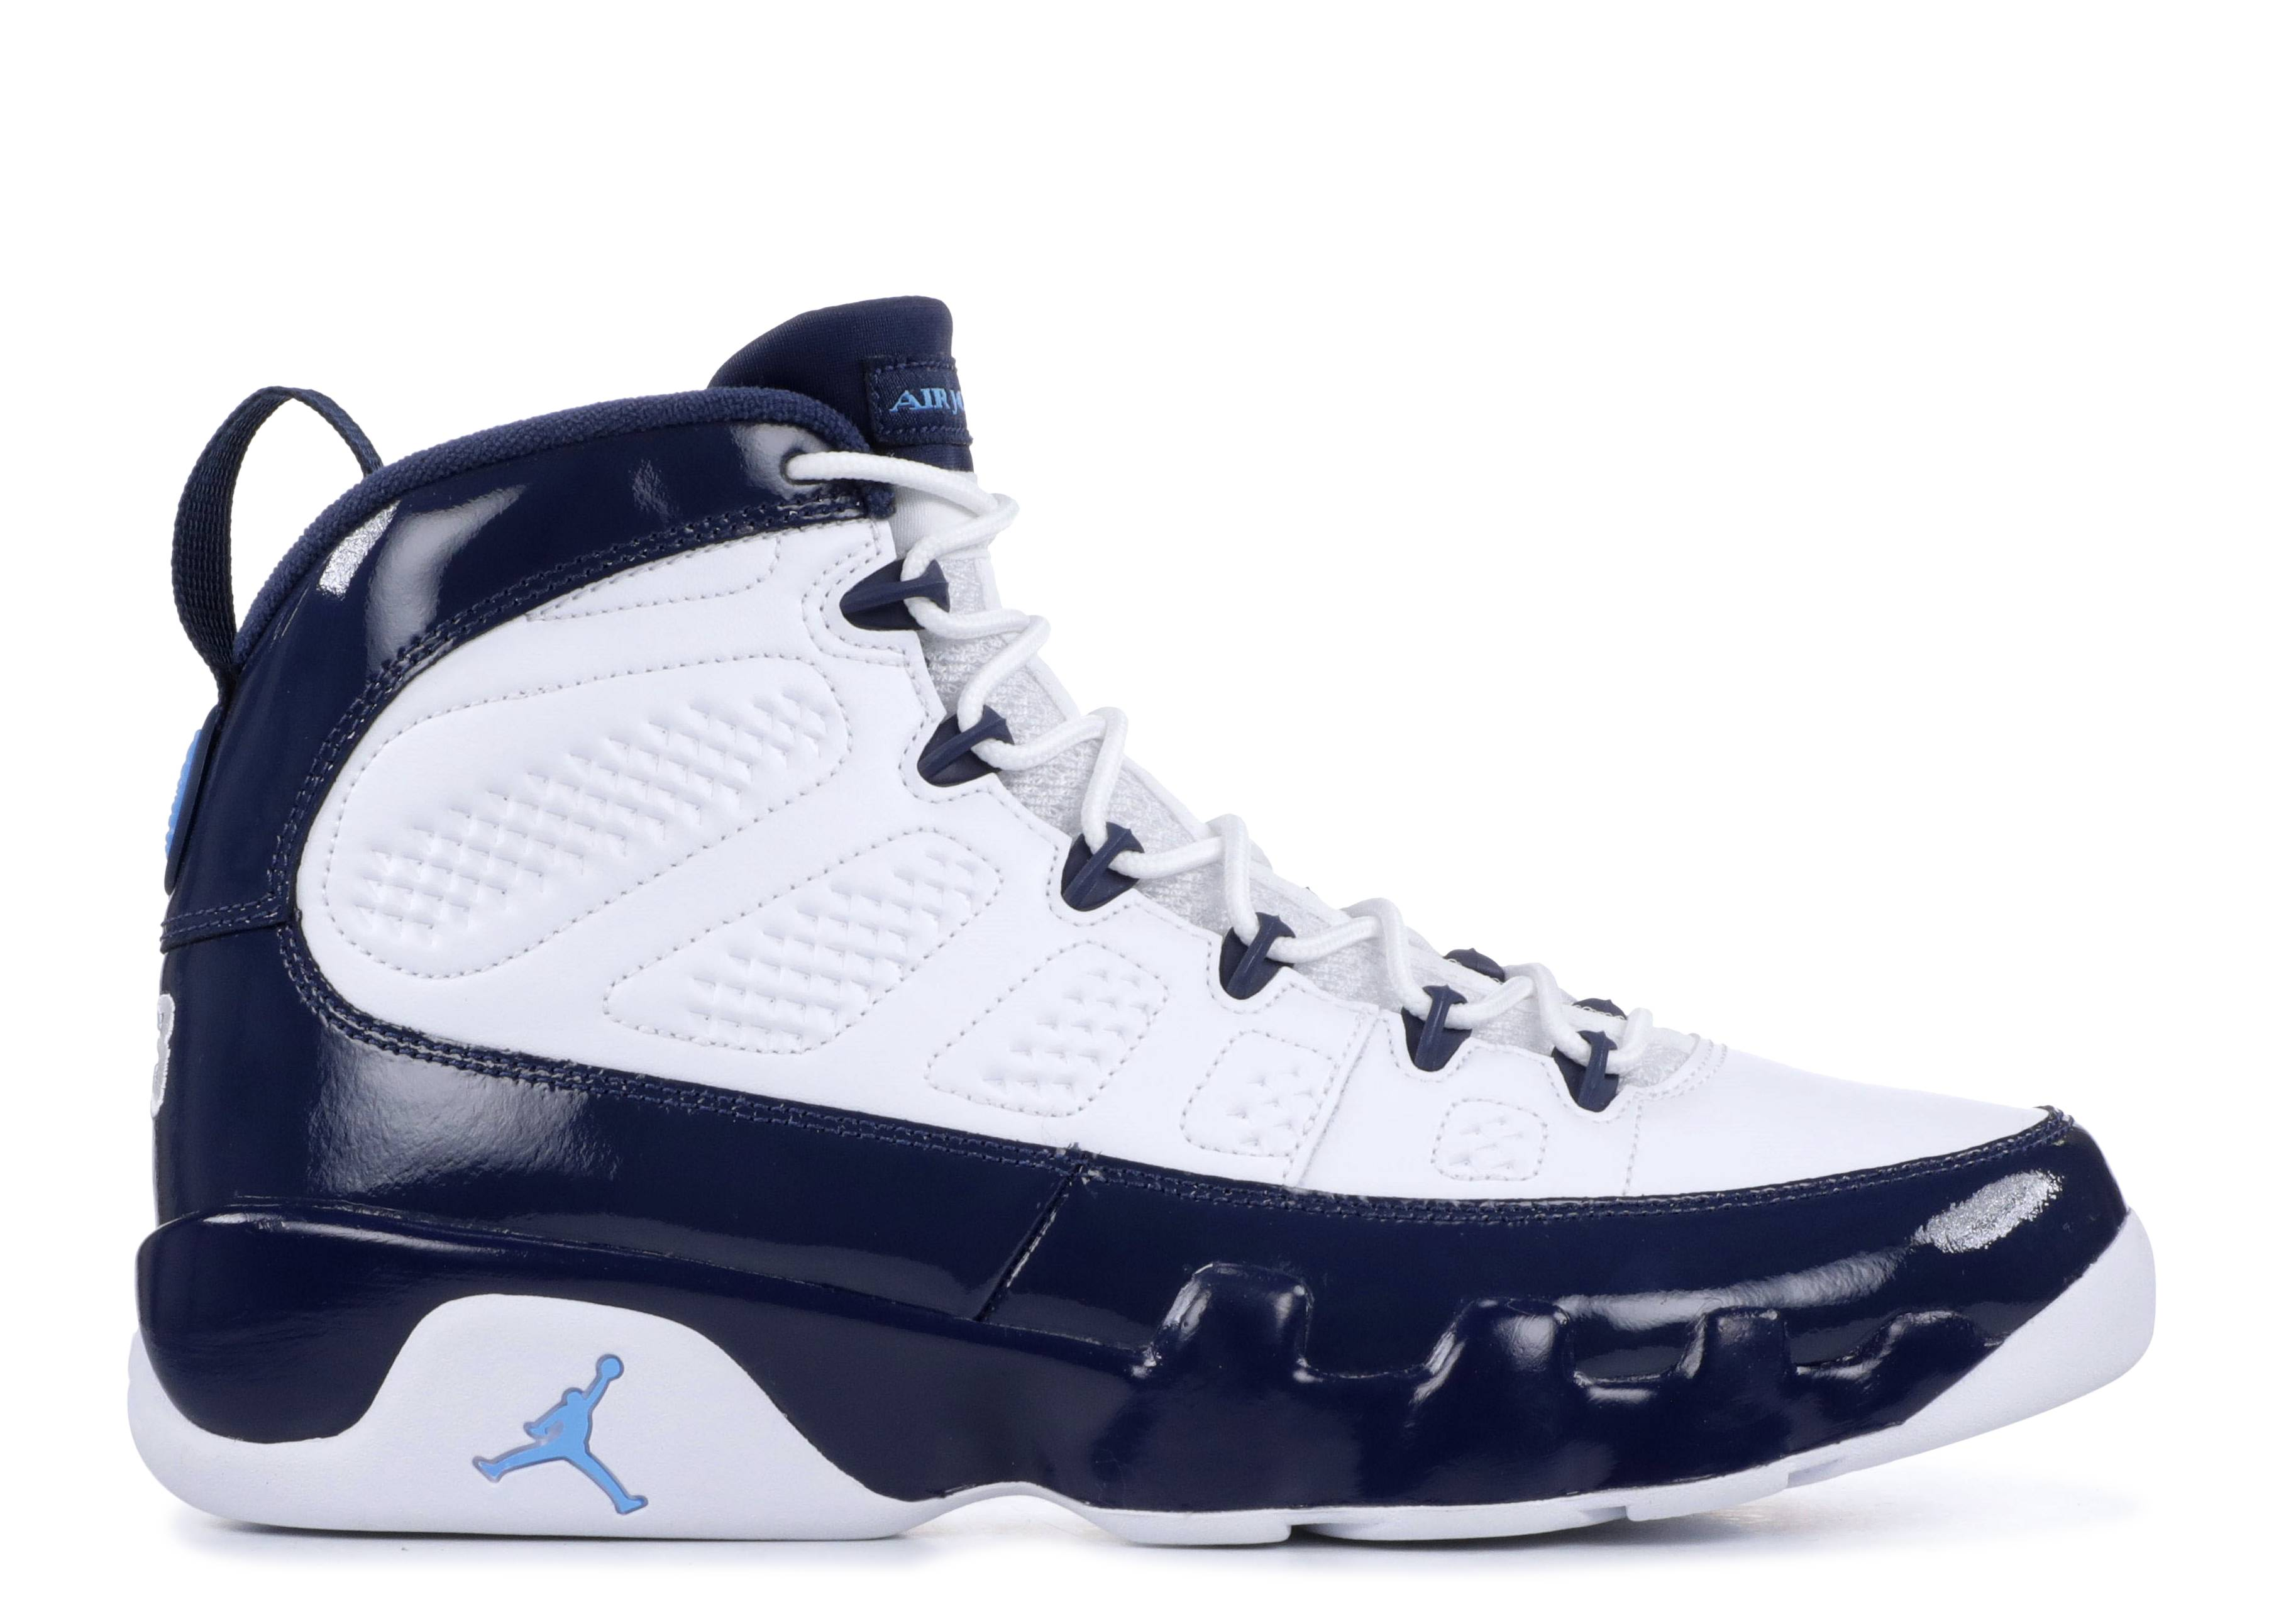 ab3c883d87a1 Air Jordan 9 (IX) Shoes - Nike